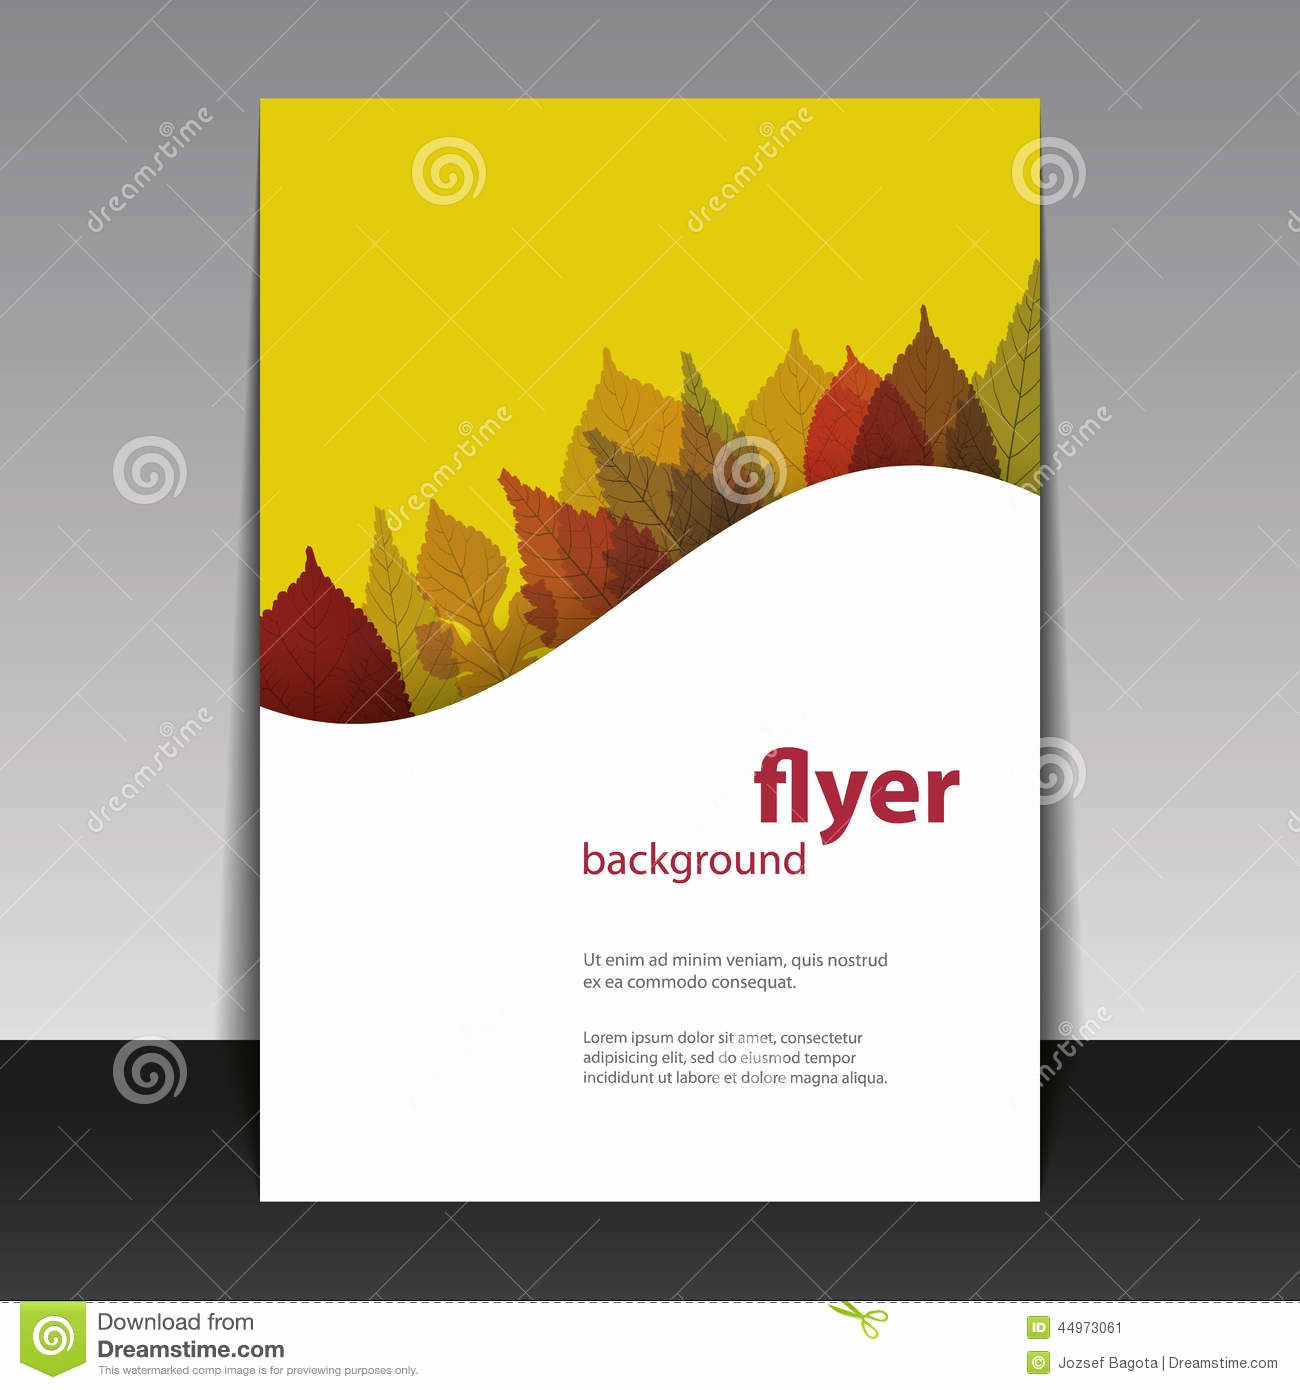 Book Cover Design Templates Best Of Flyer Cover Design Autumn Leaves Stock Vector